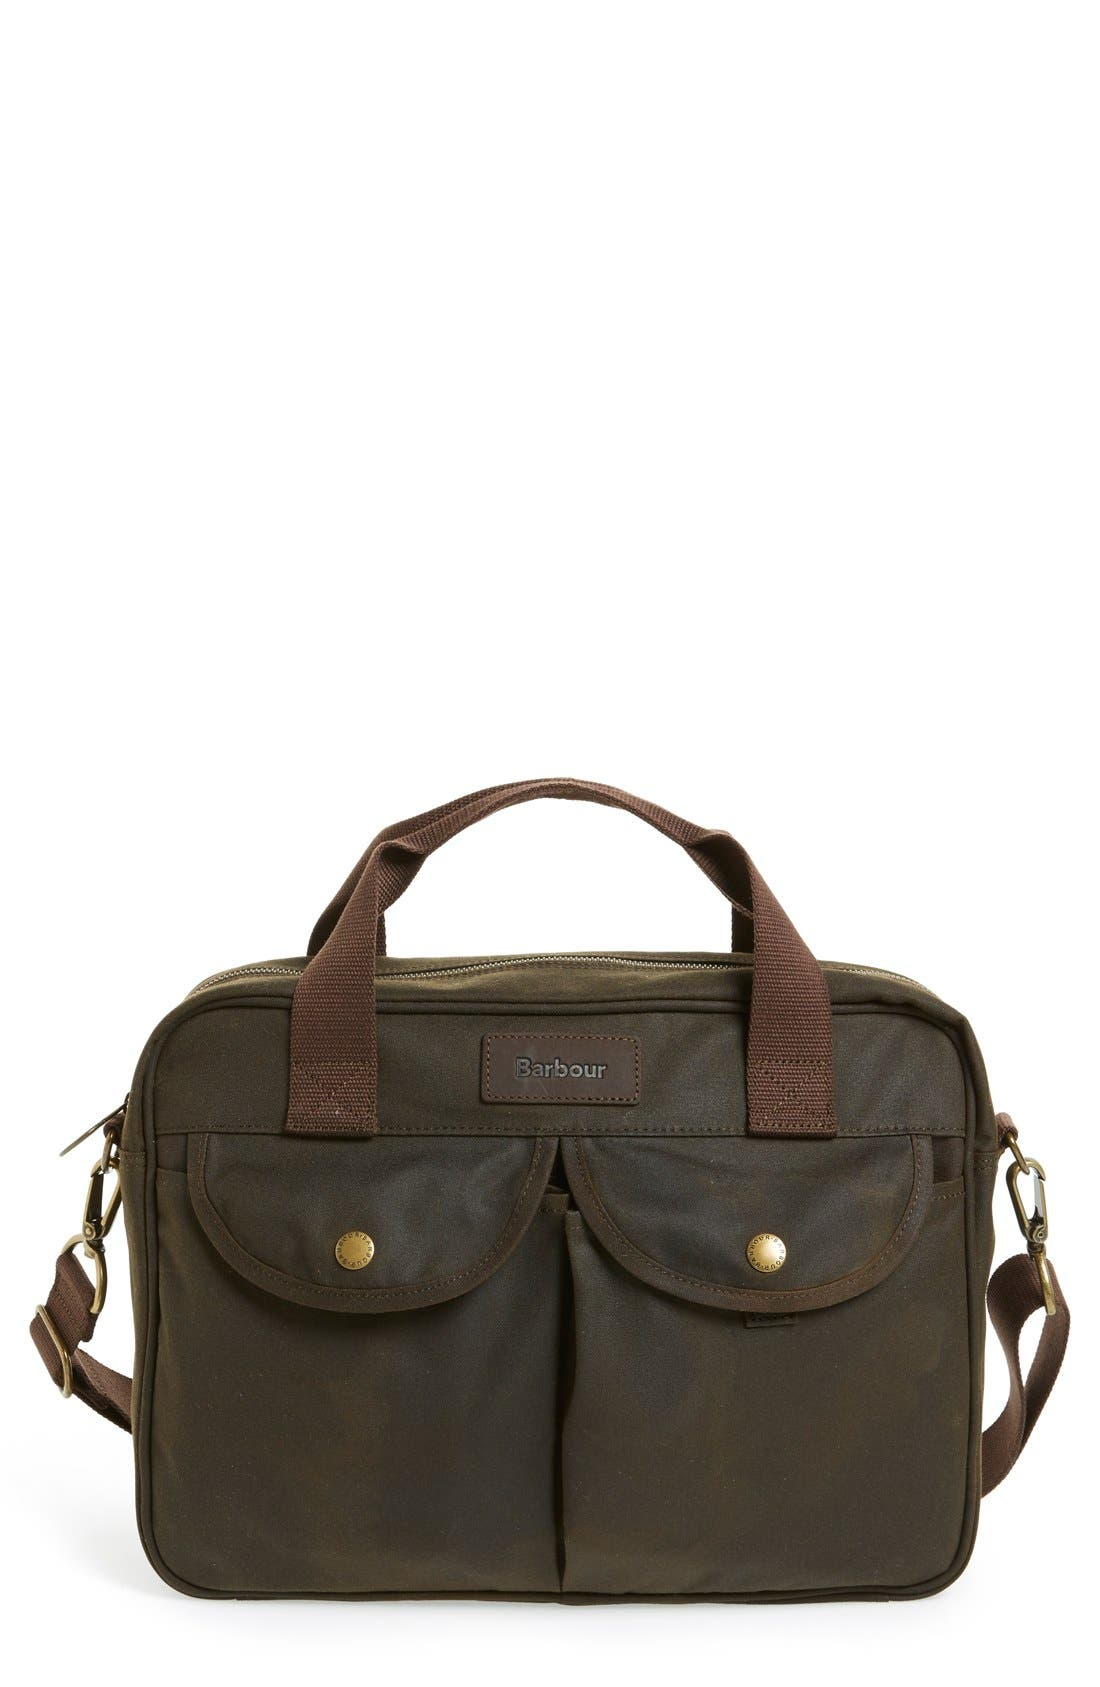 'Longthorpe' Waxed Canvas Laptop Bag,                         Main,                         color, 340